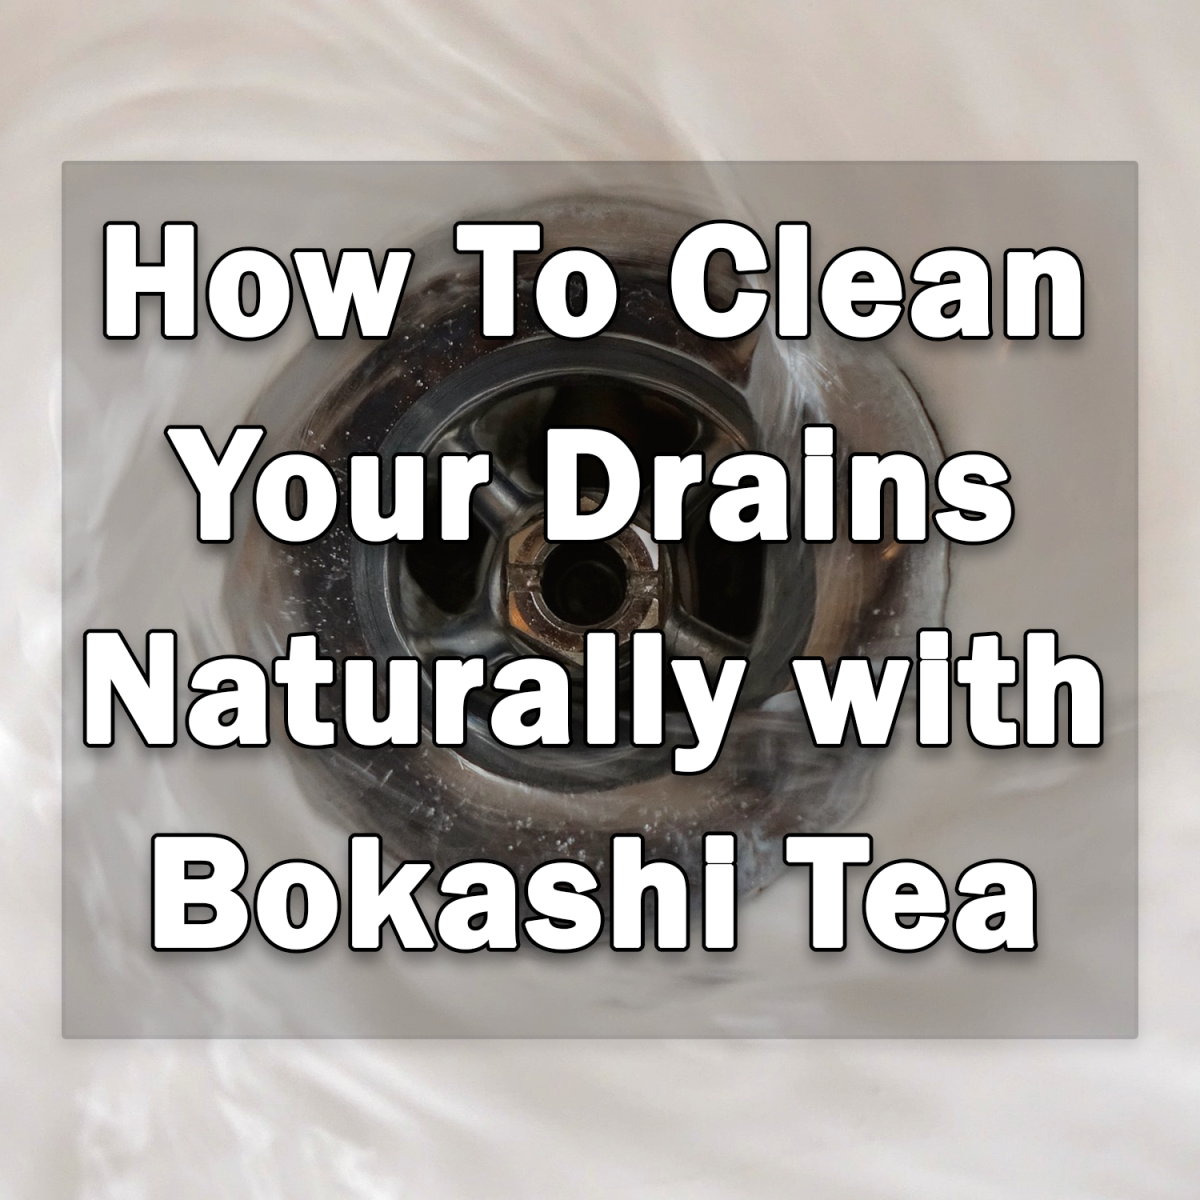 How To Clean Your Drains Naturally with Bokashi Tea